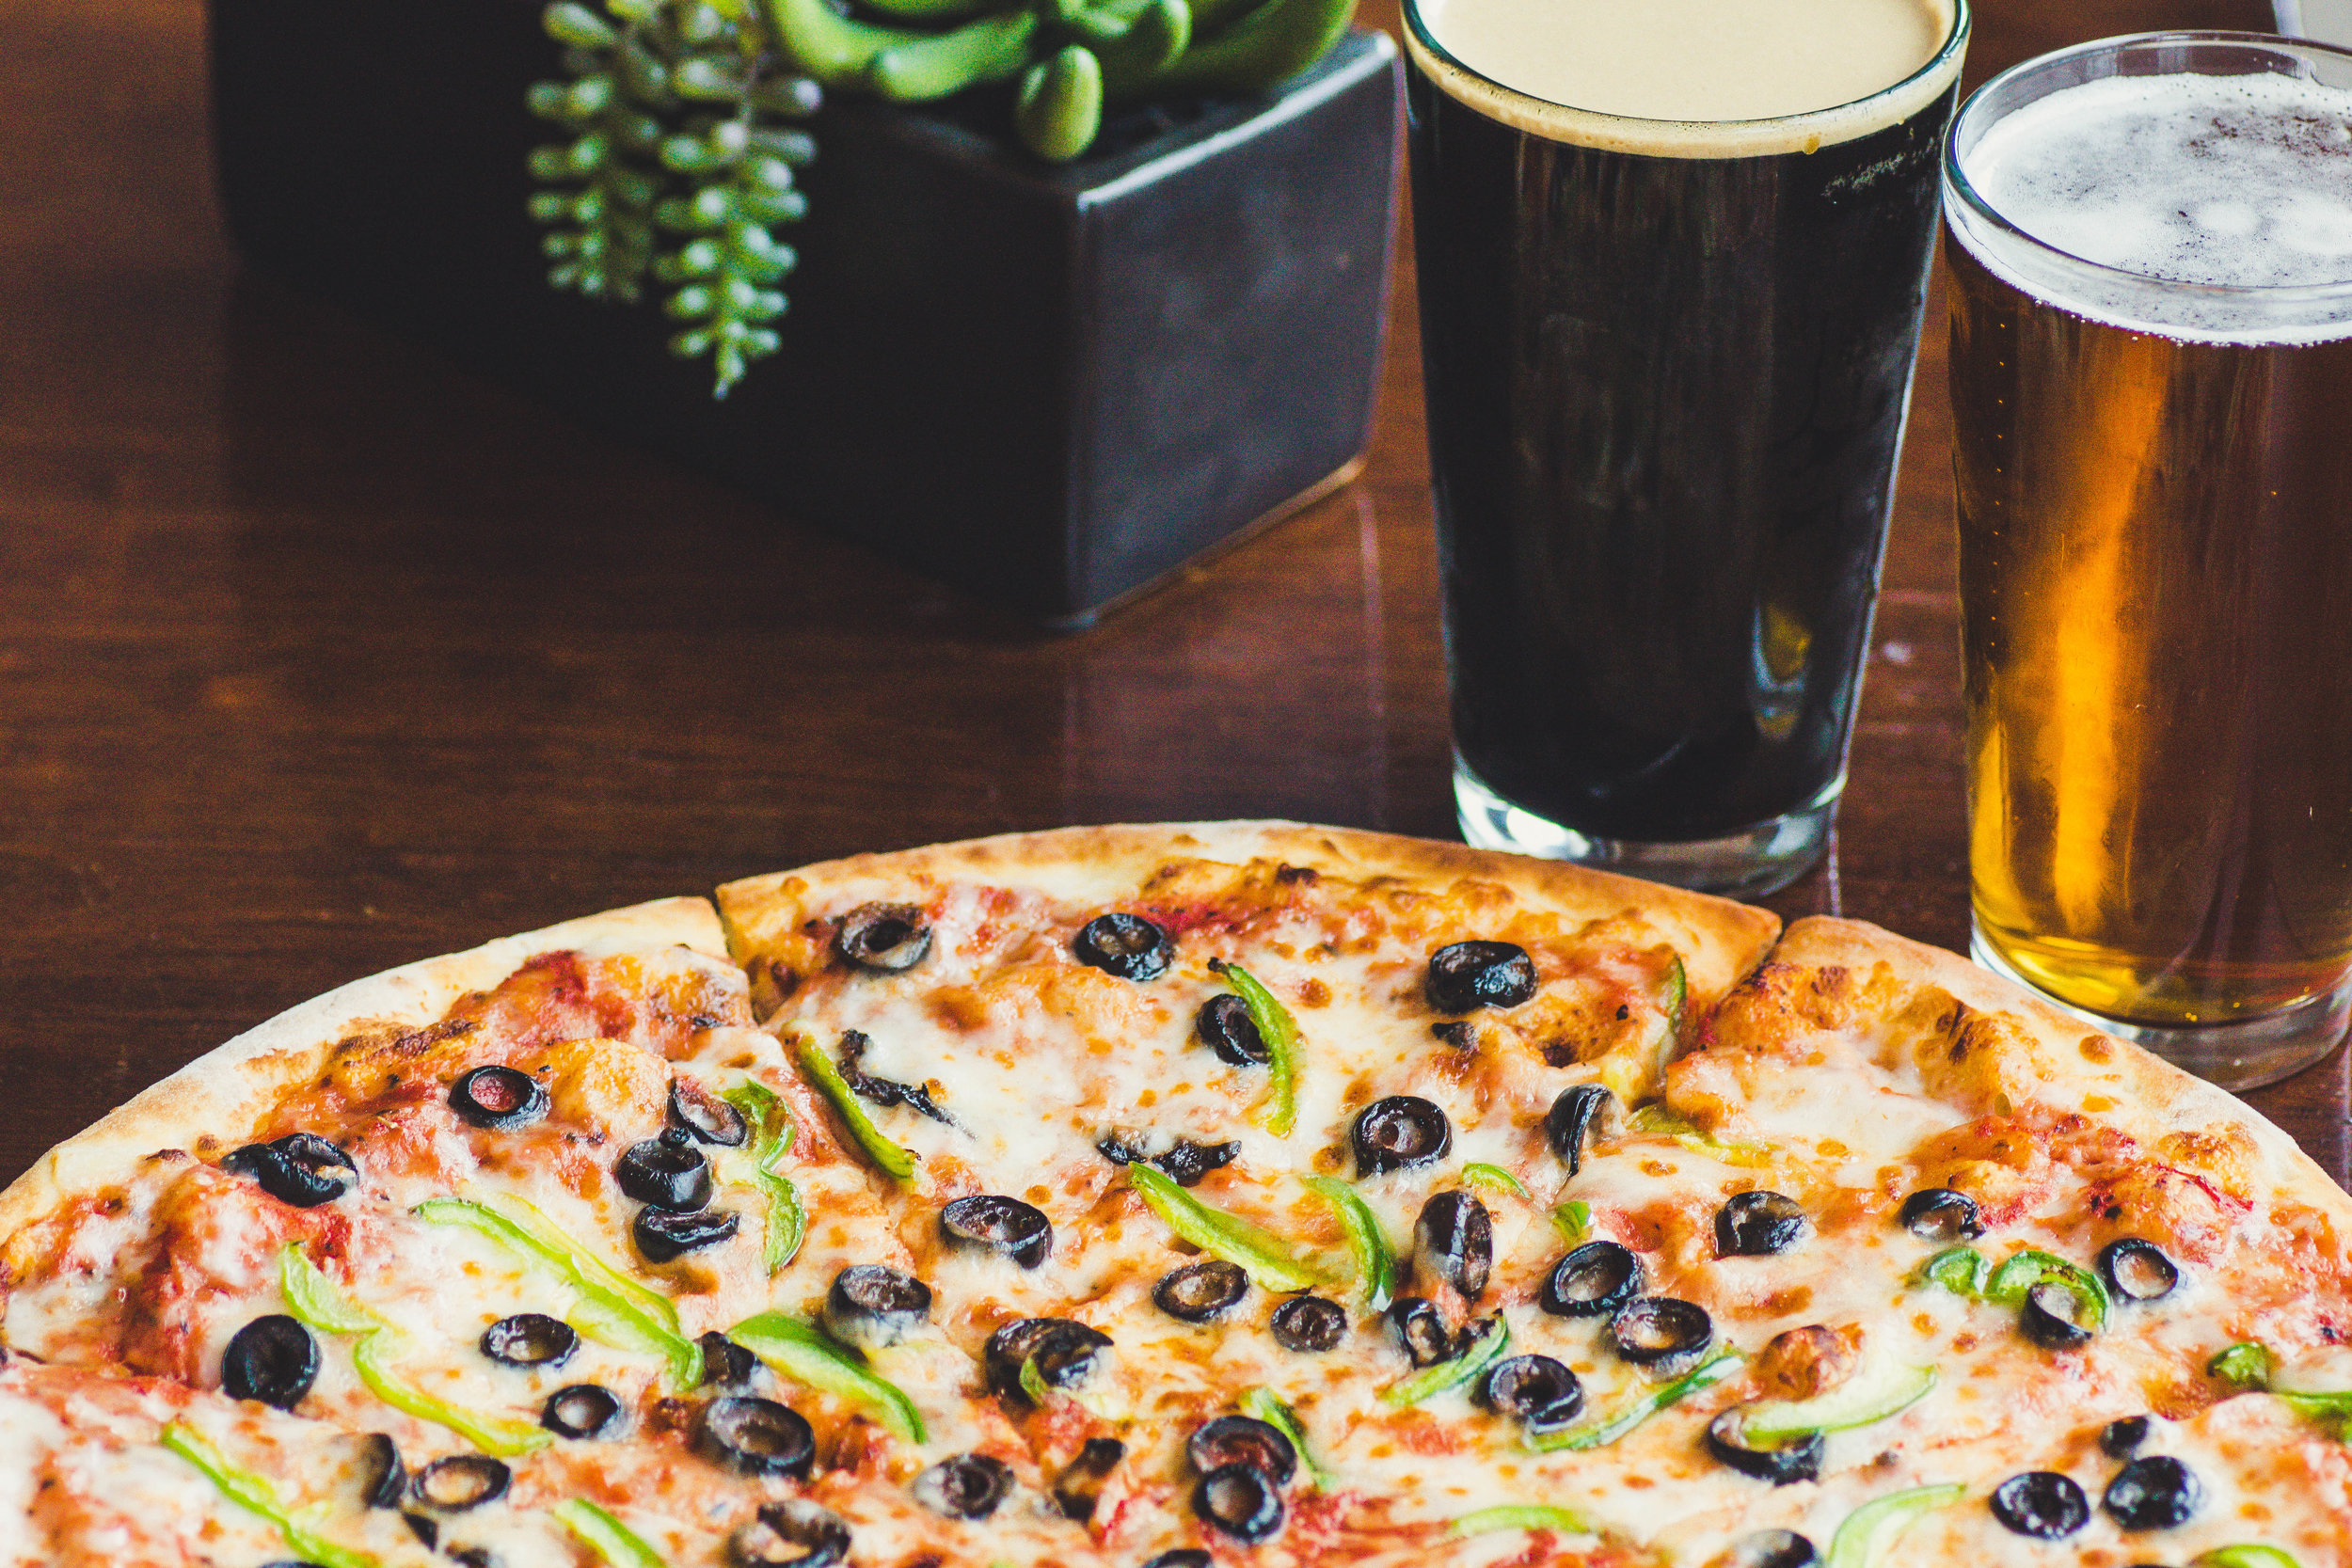 Monday Special - 1 Lrg. 2-Topping Pizza & 2 Draft Beers!  $18.95